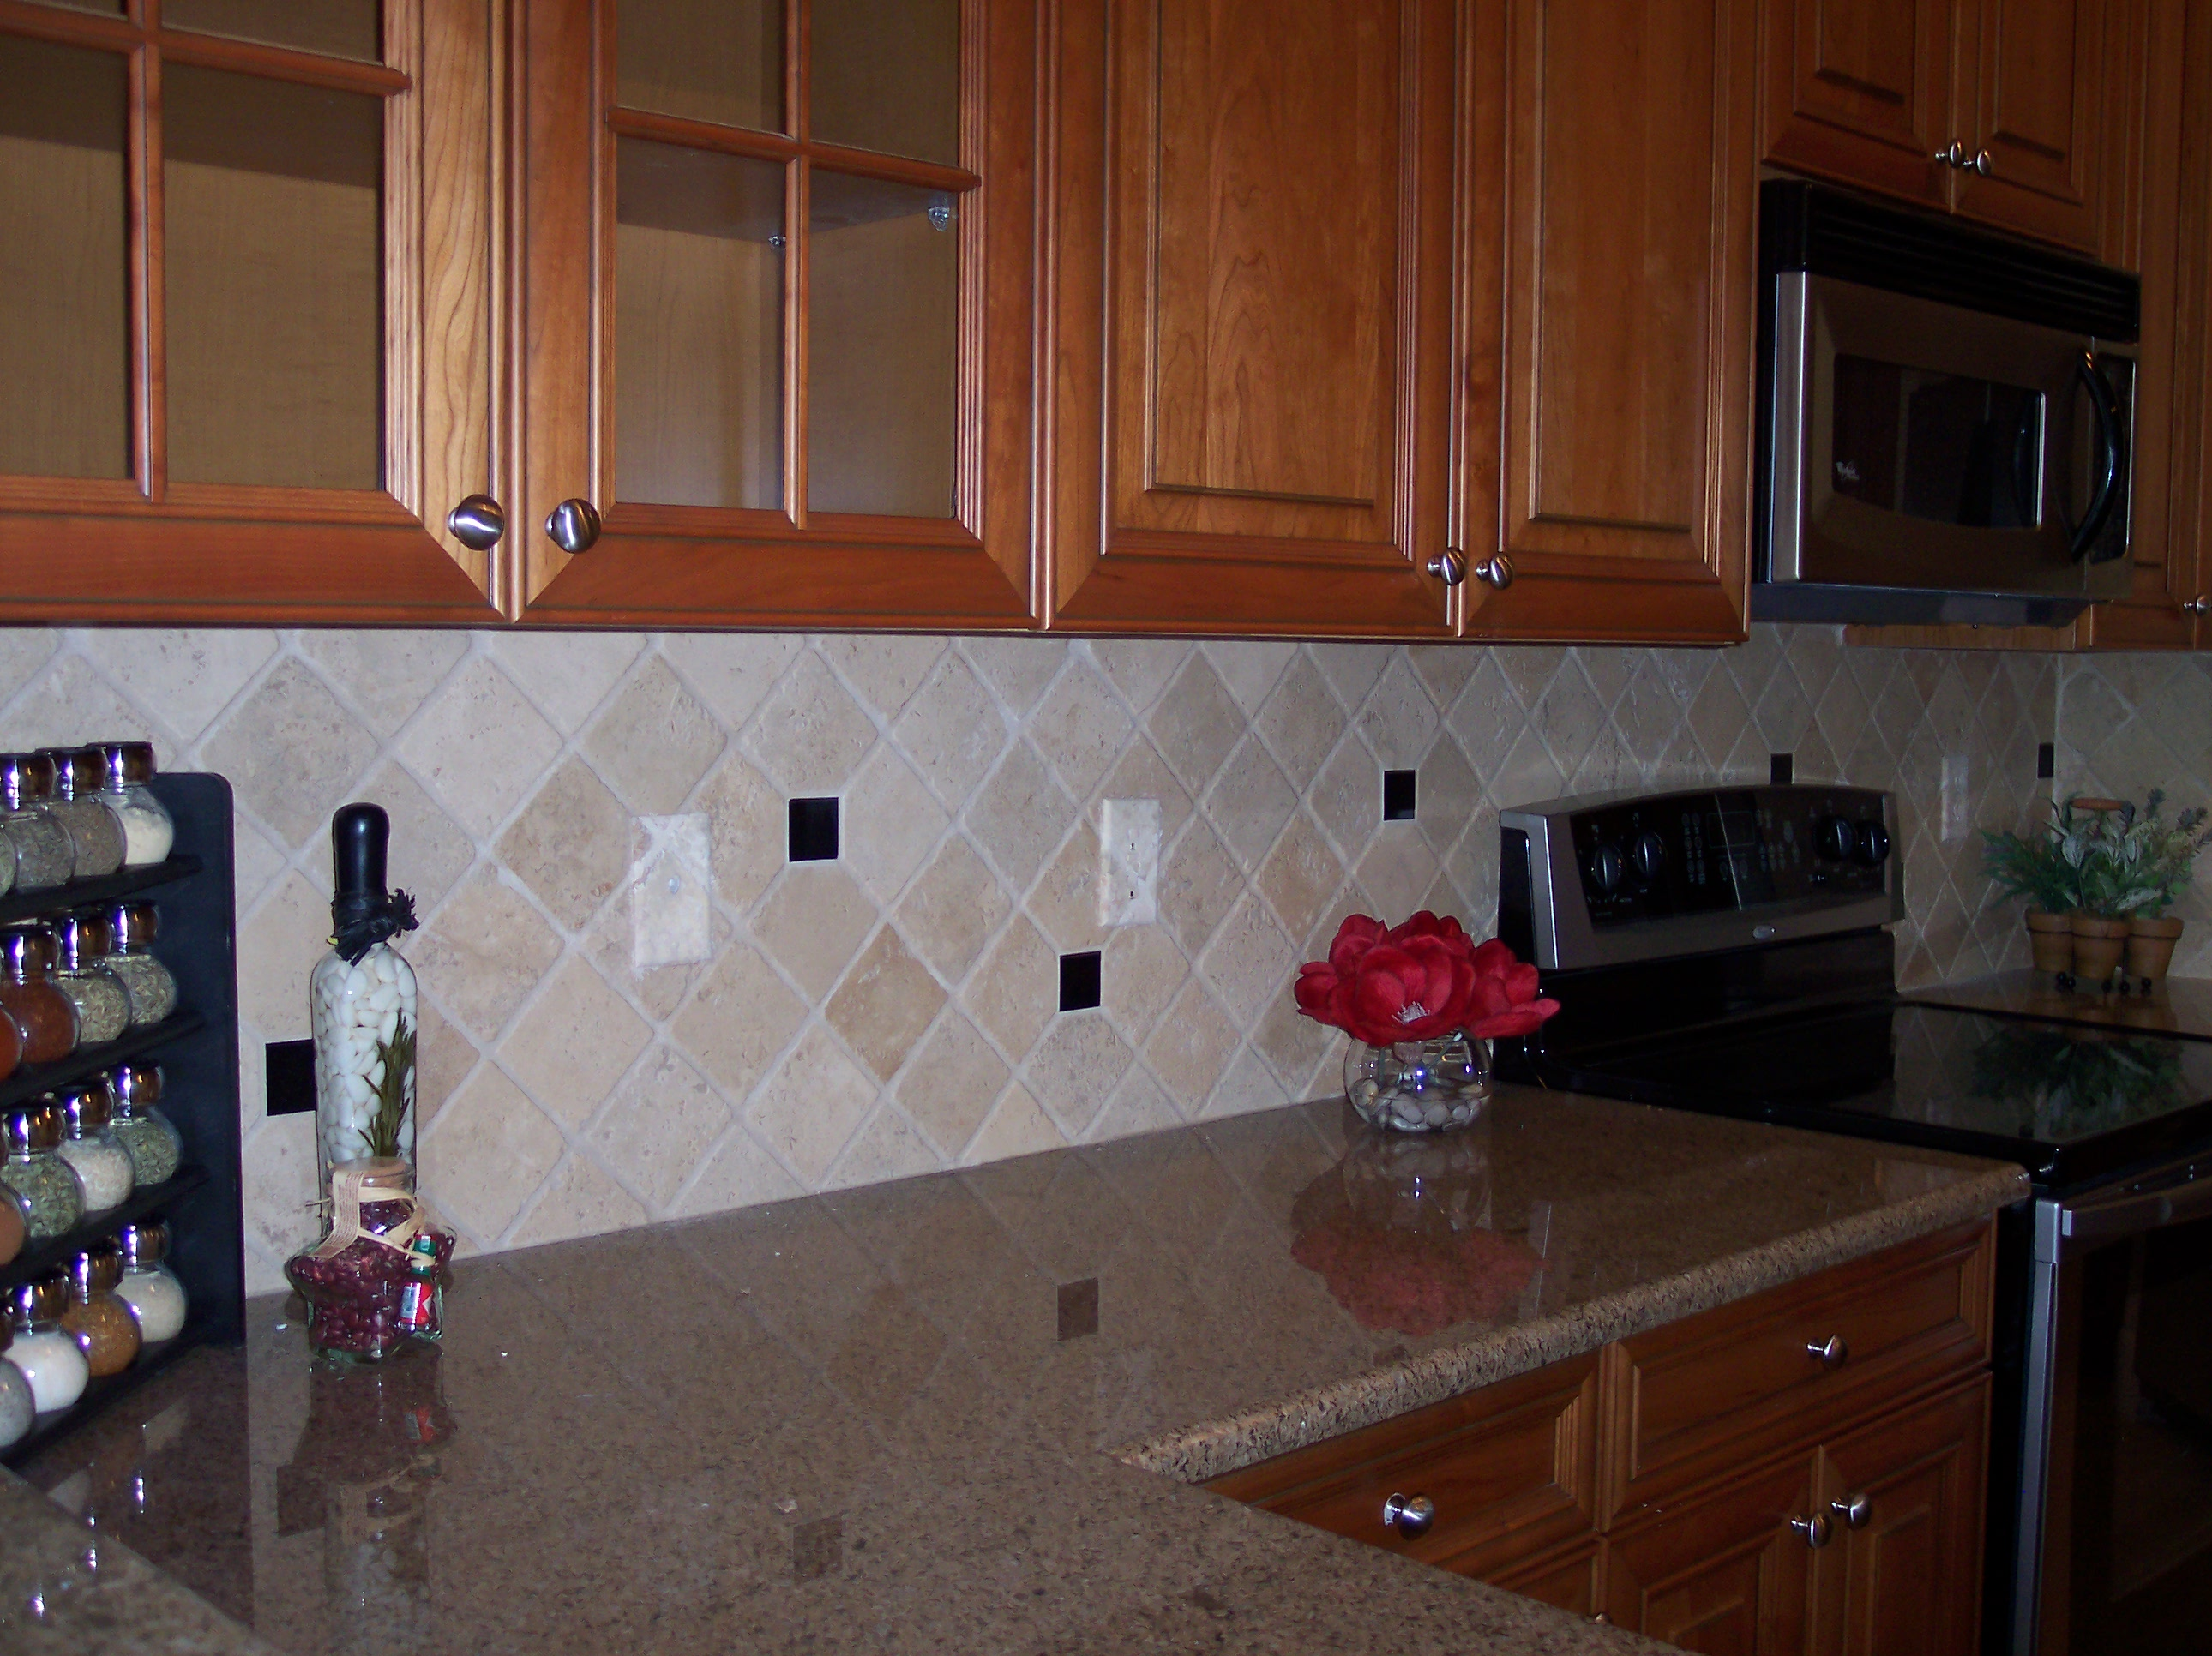 Pebblestone Tile & Flooring Inc